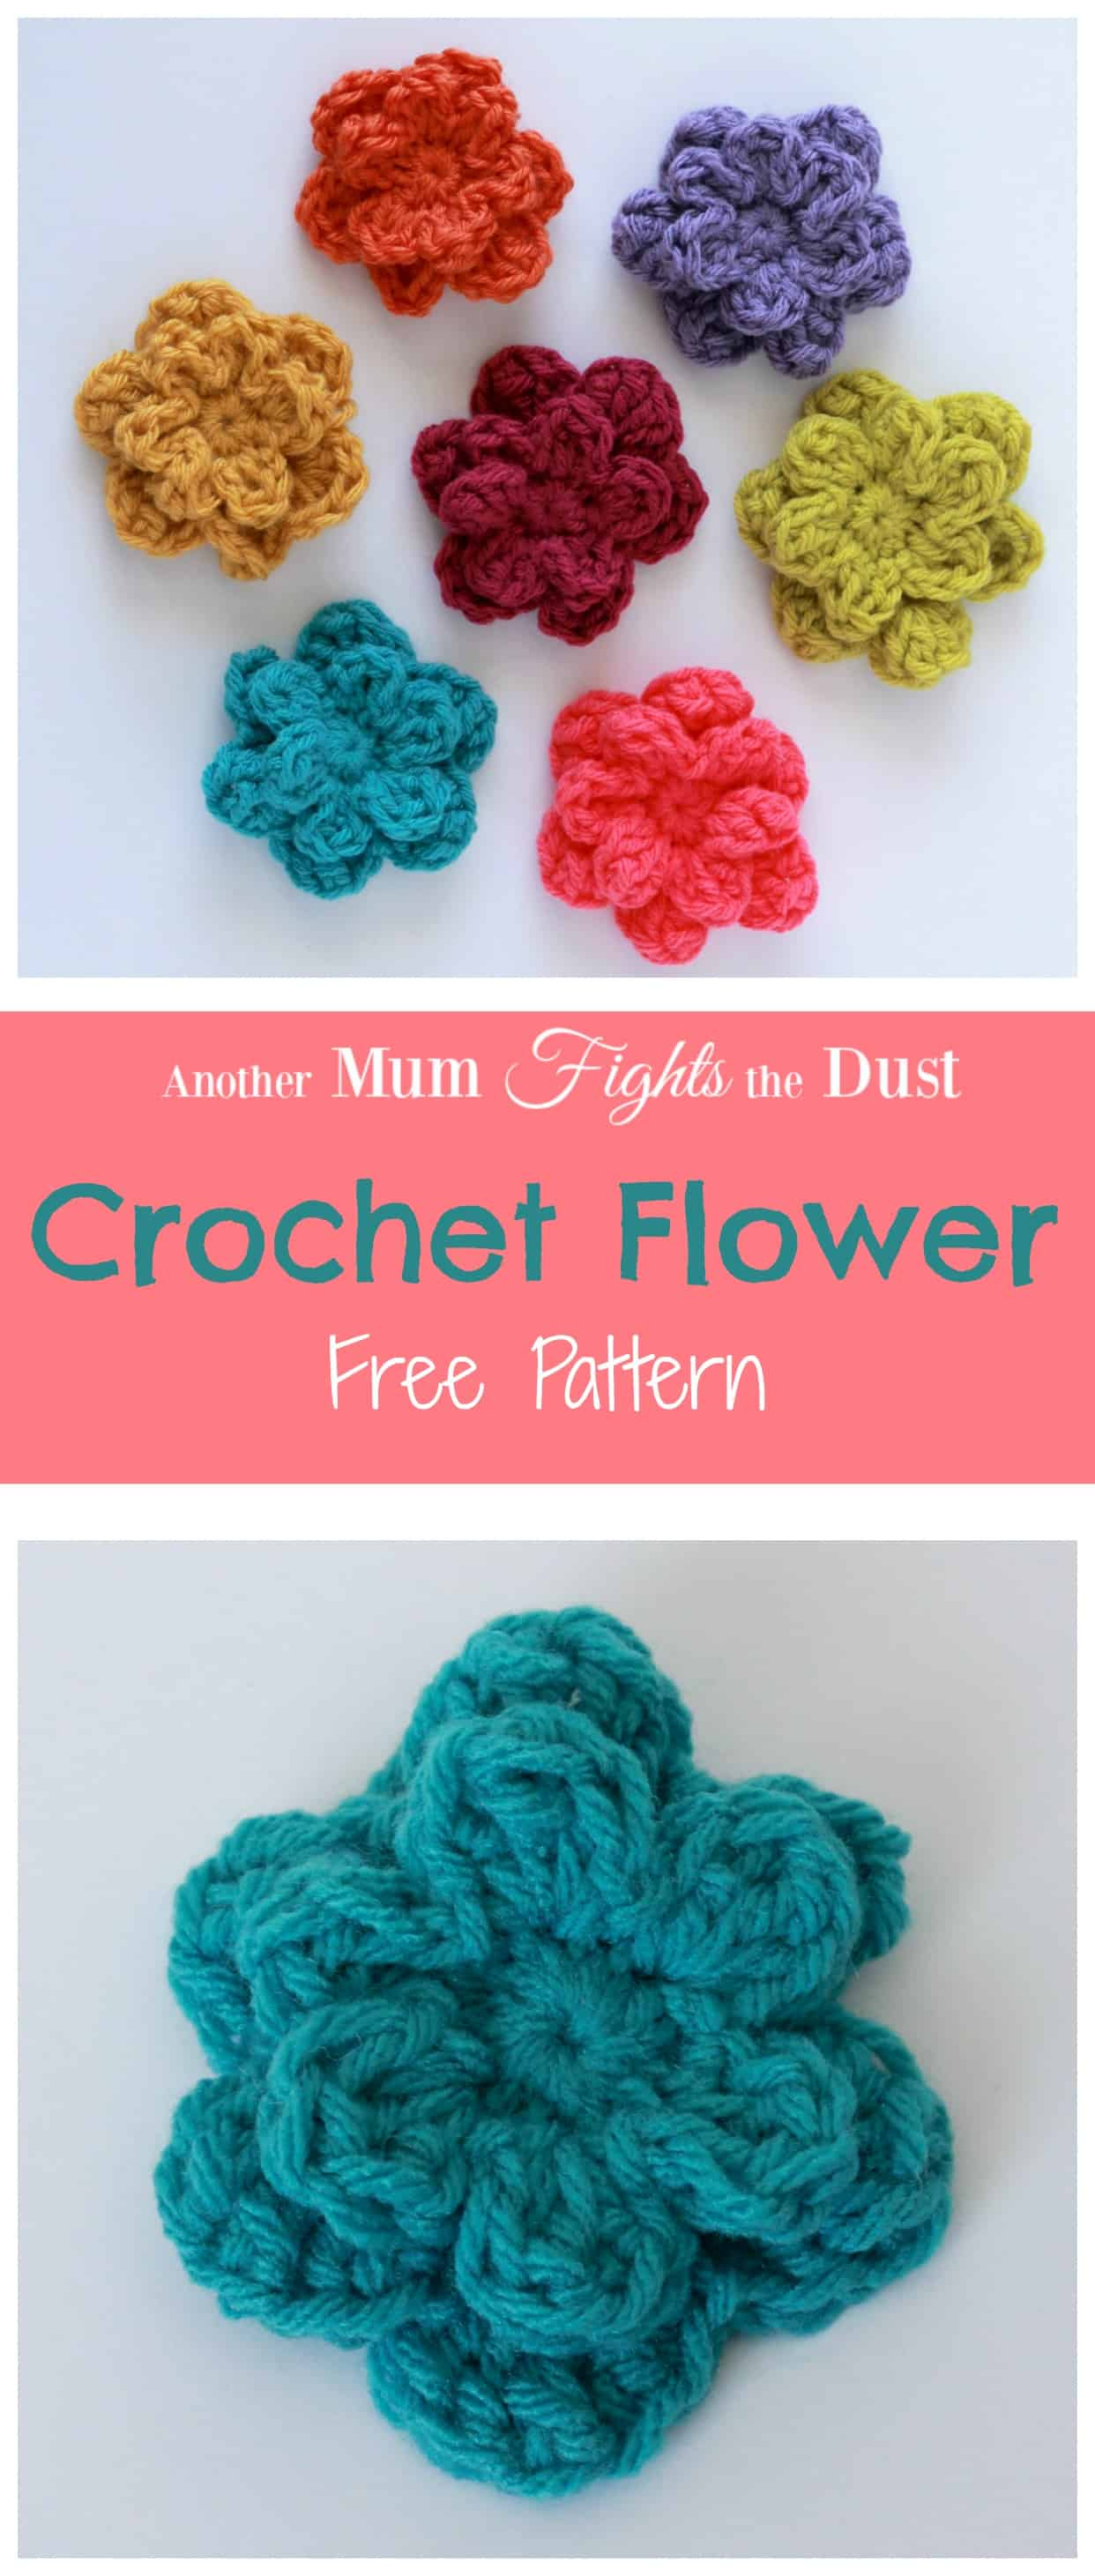 Crochet Flower Pattern - Another Mum Fights the Dust